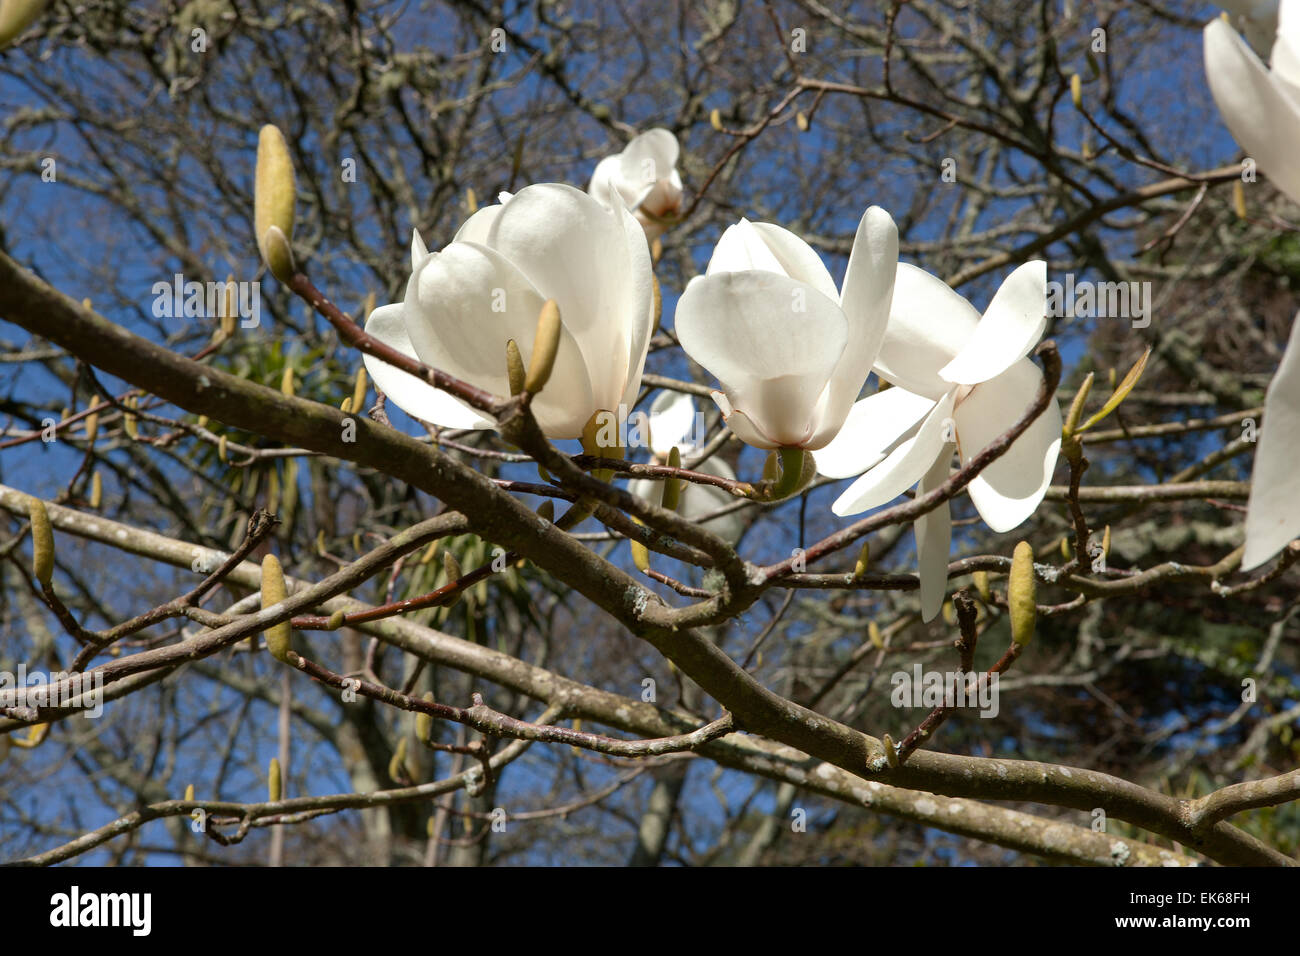 Magnolia david clulow stock photos magnolia david clulow stock large white flowers of magnolia david clulow tree at pinetum park st austell cornwall mightylinksfo